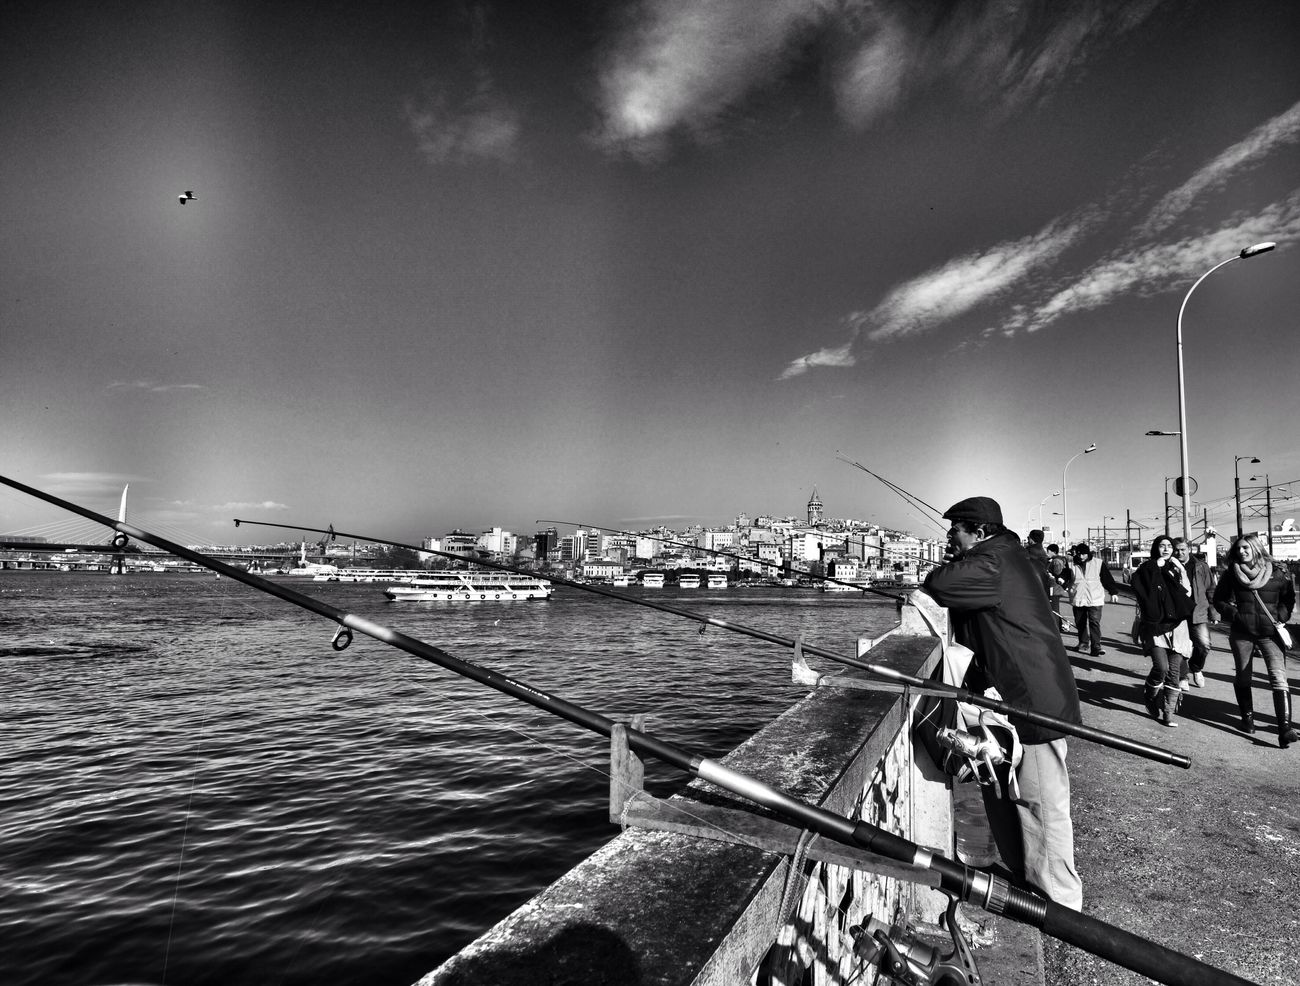 Blackandwhitephotography Waterfront Black & White Blackandwhite Bnw_collection Bnw_captures Bnwphotography EyeEm Best Shots EyeEm Best Shots - Black + White EyeEm Best Shots - The Streets Eye4photography  Bw_collection EyeEm Bnw BW Collection Bw Streetphotography Bw #bnw #BWcollaboration #istanbul #blackwhite #blackandwhite Taking Photos